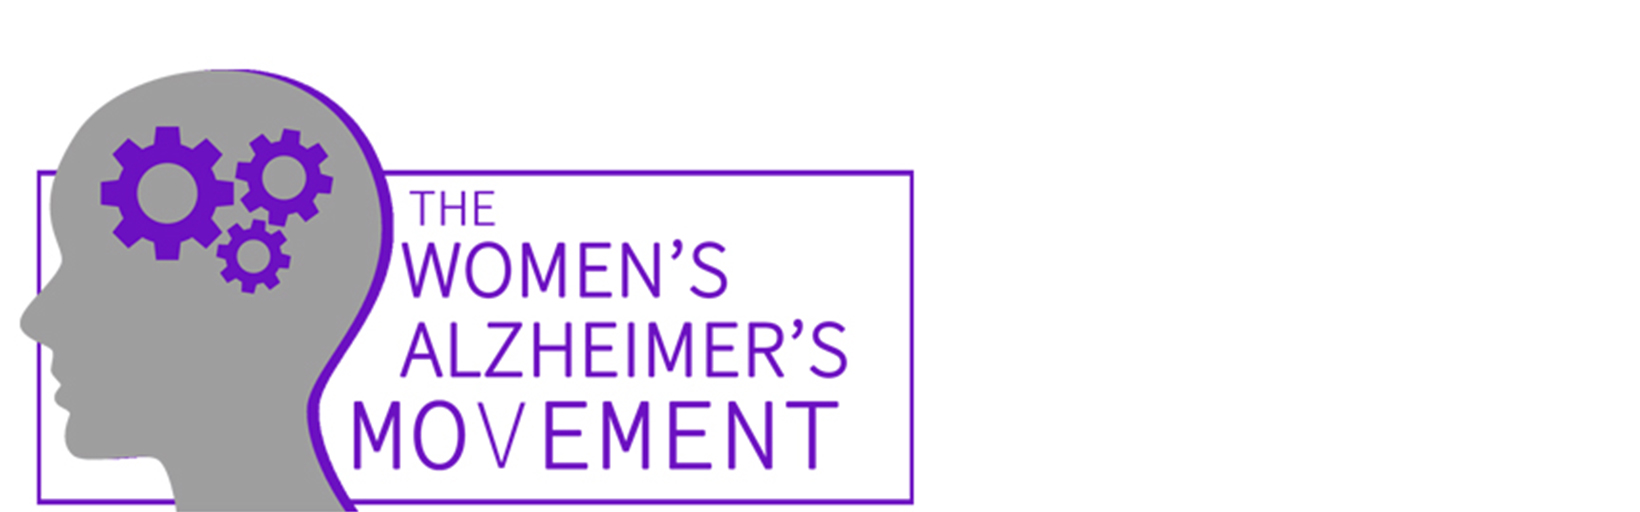 The Women's Alzheimer's Movement